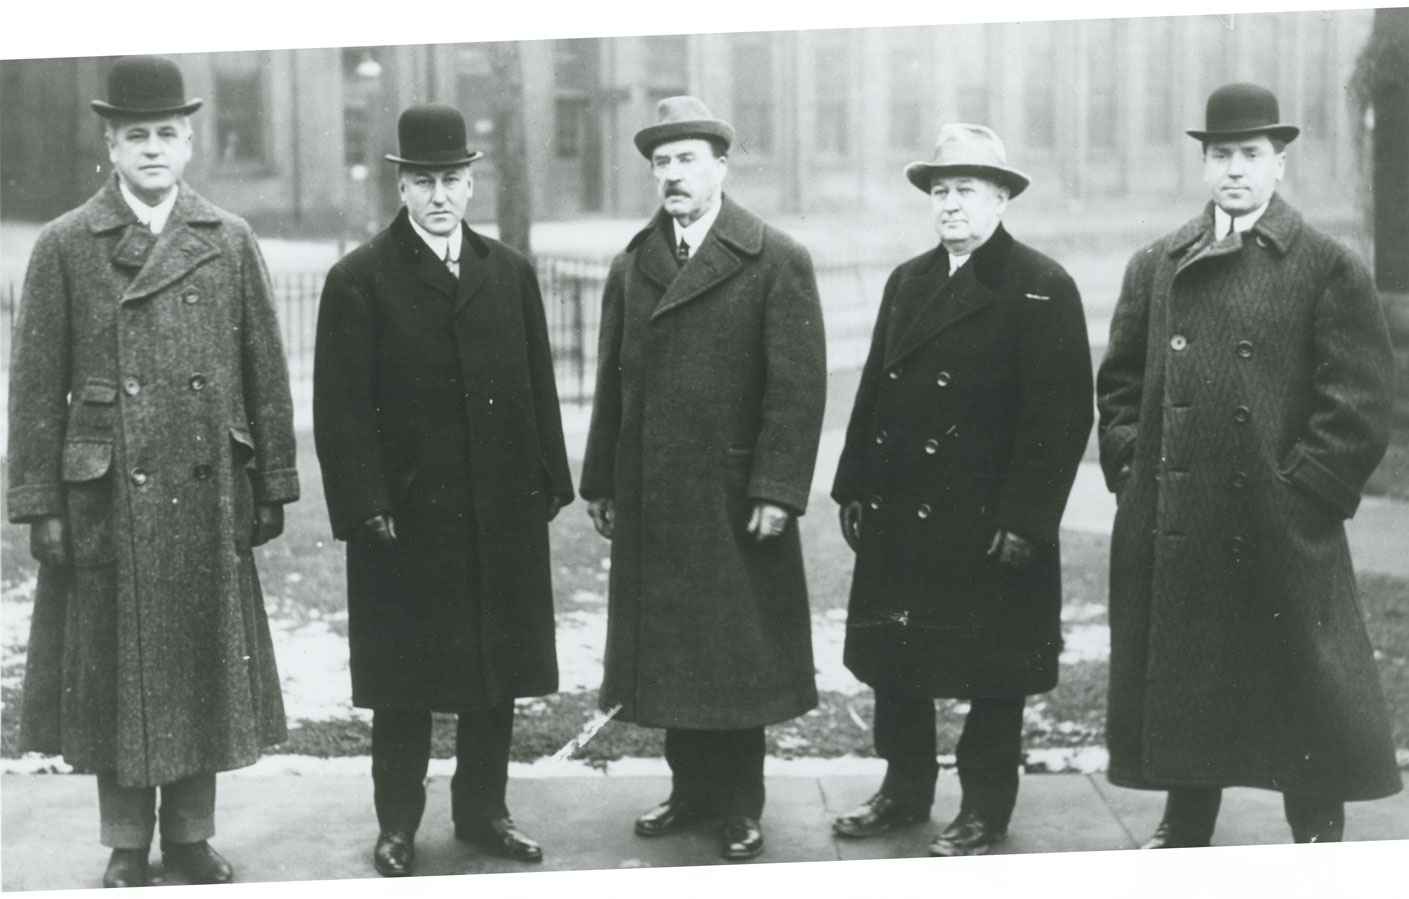 Nela Founders and executives